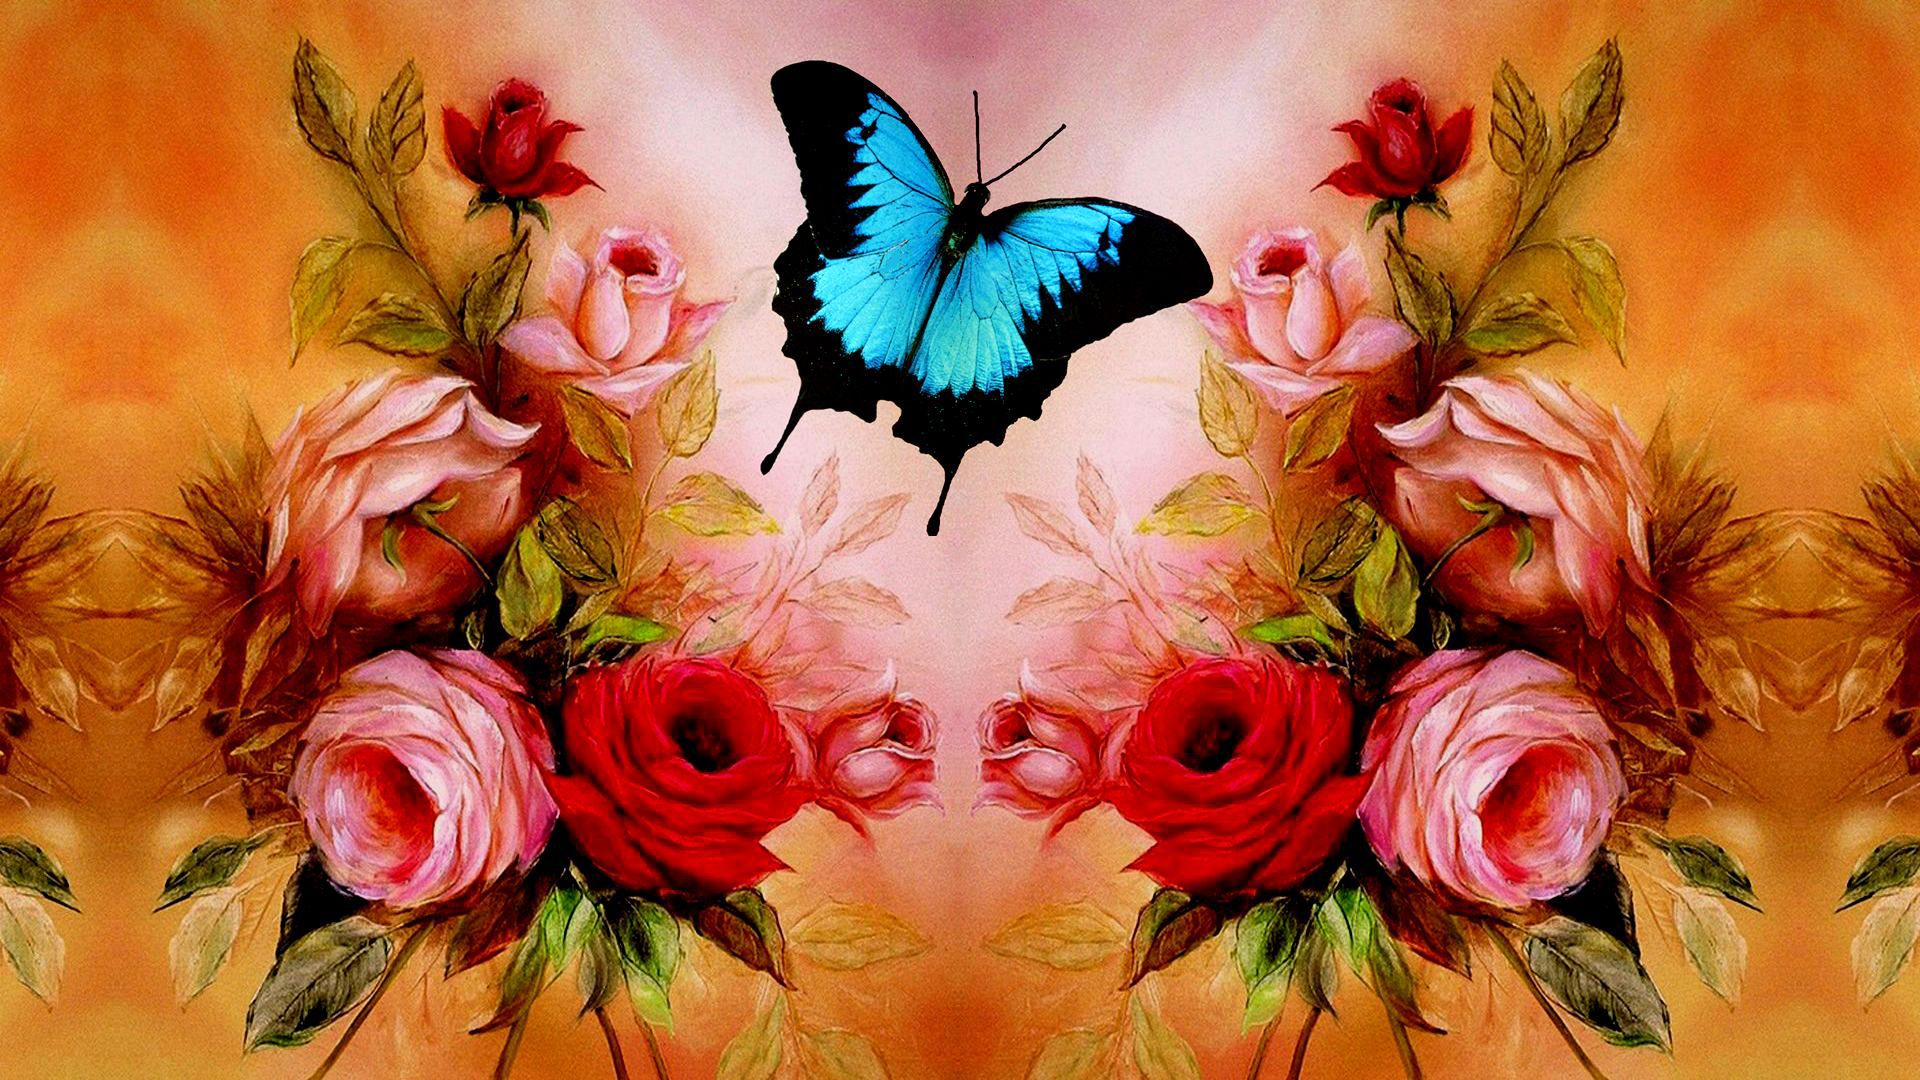 Valentine's day WallpaperButterfly Roses Wallpapers